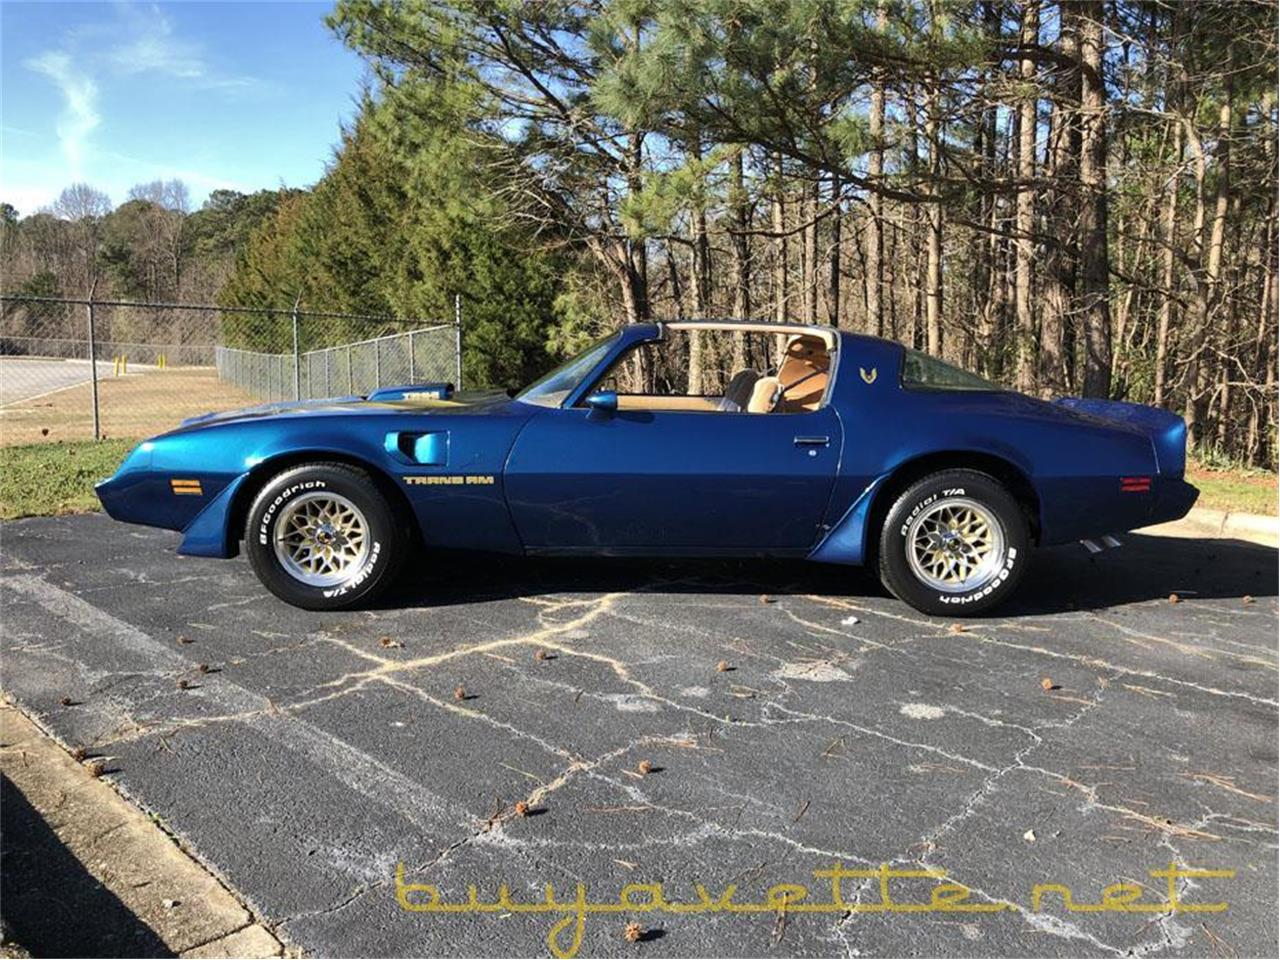 Large Picture of '79 Pontiac Firebird located in Georgia - $32,999.00 Offered by Buyavette - PLJW